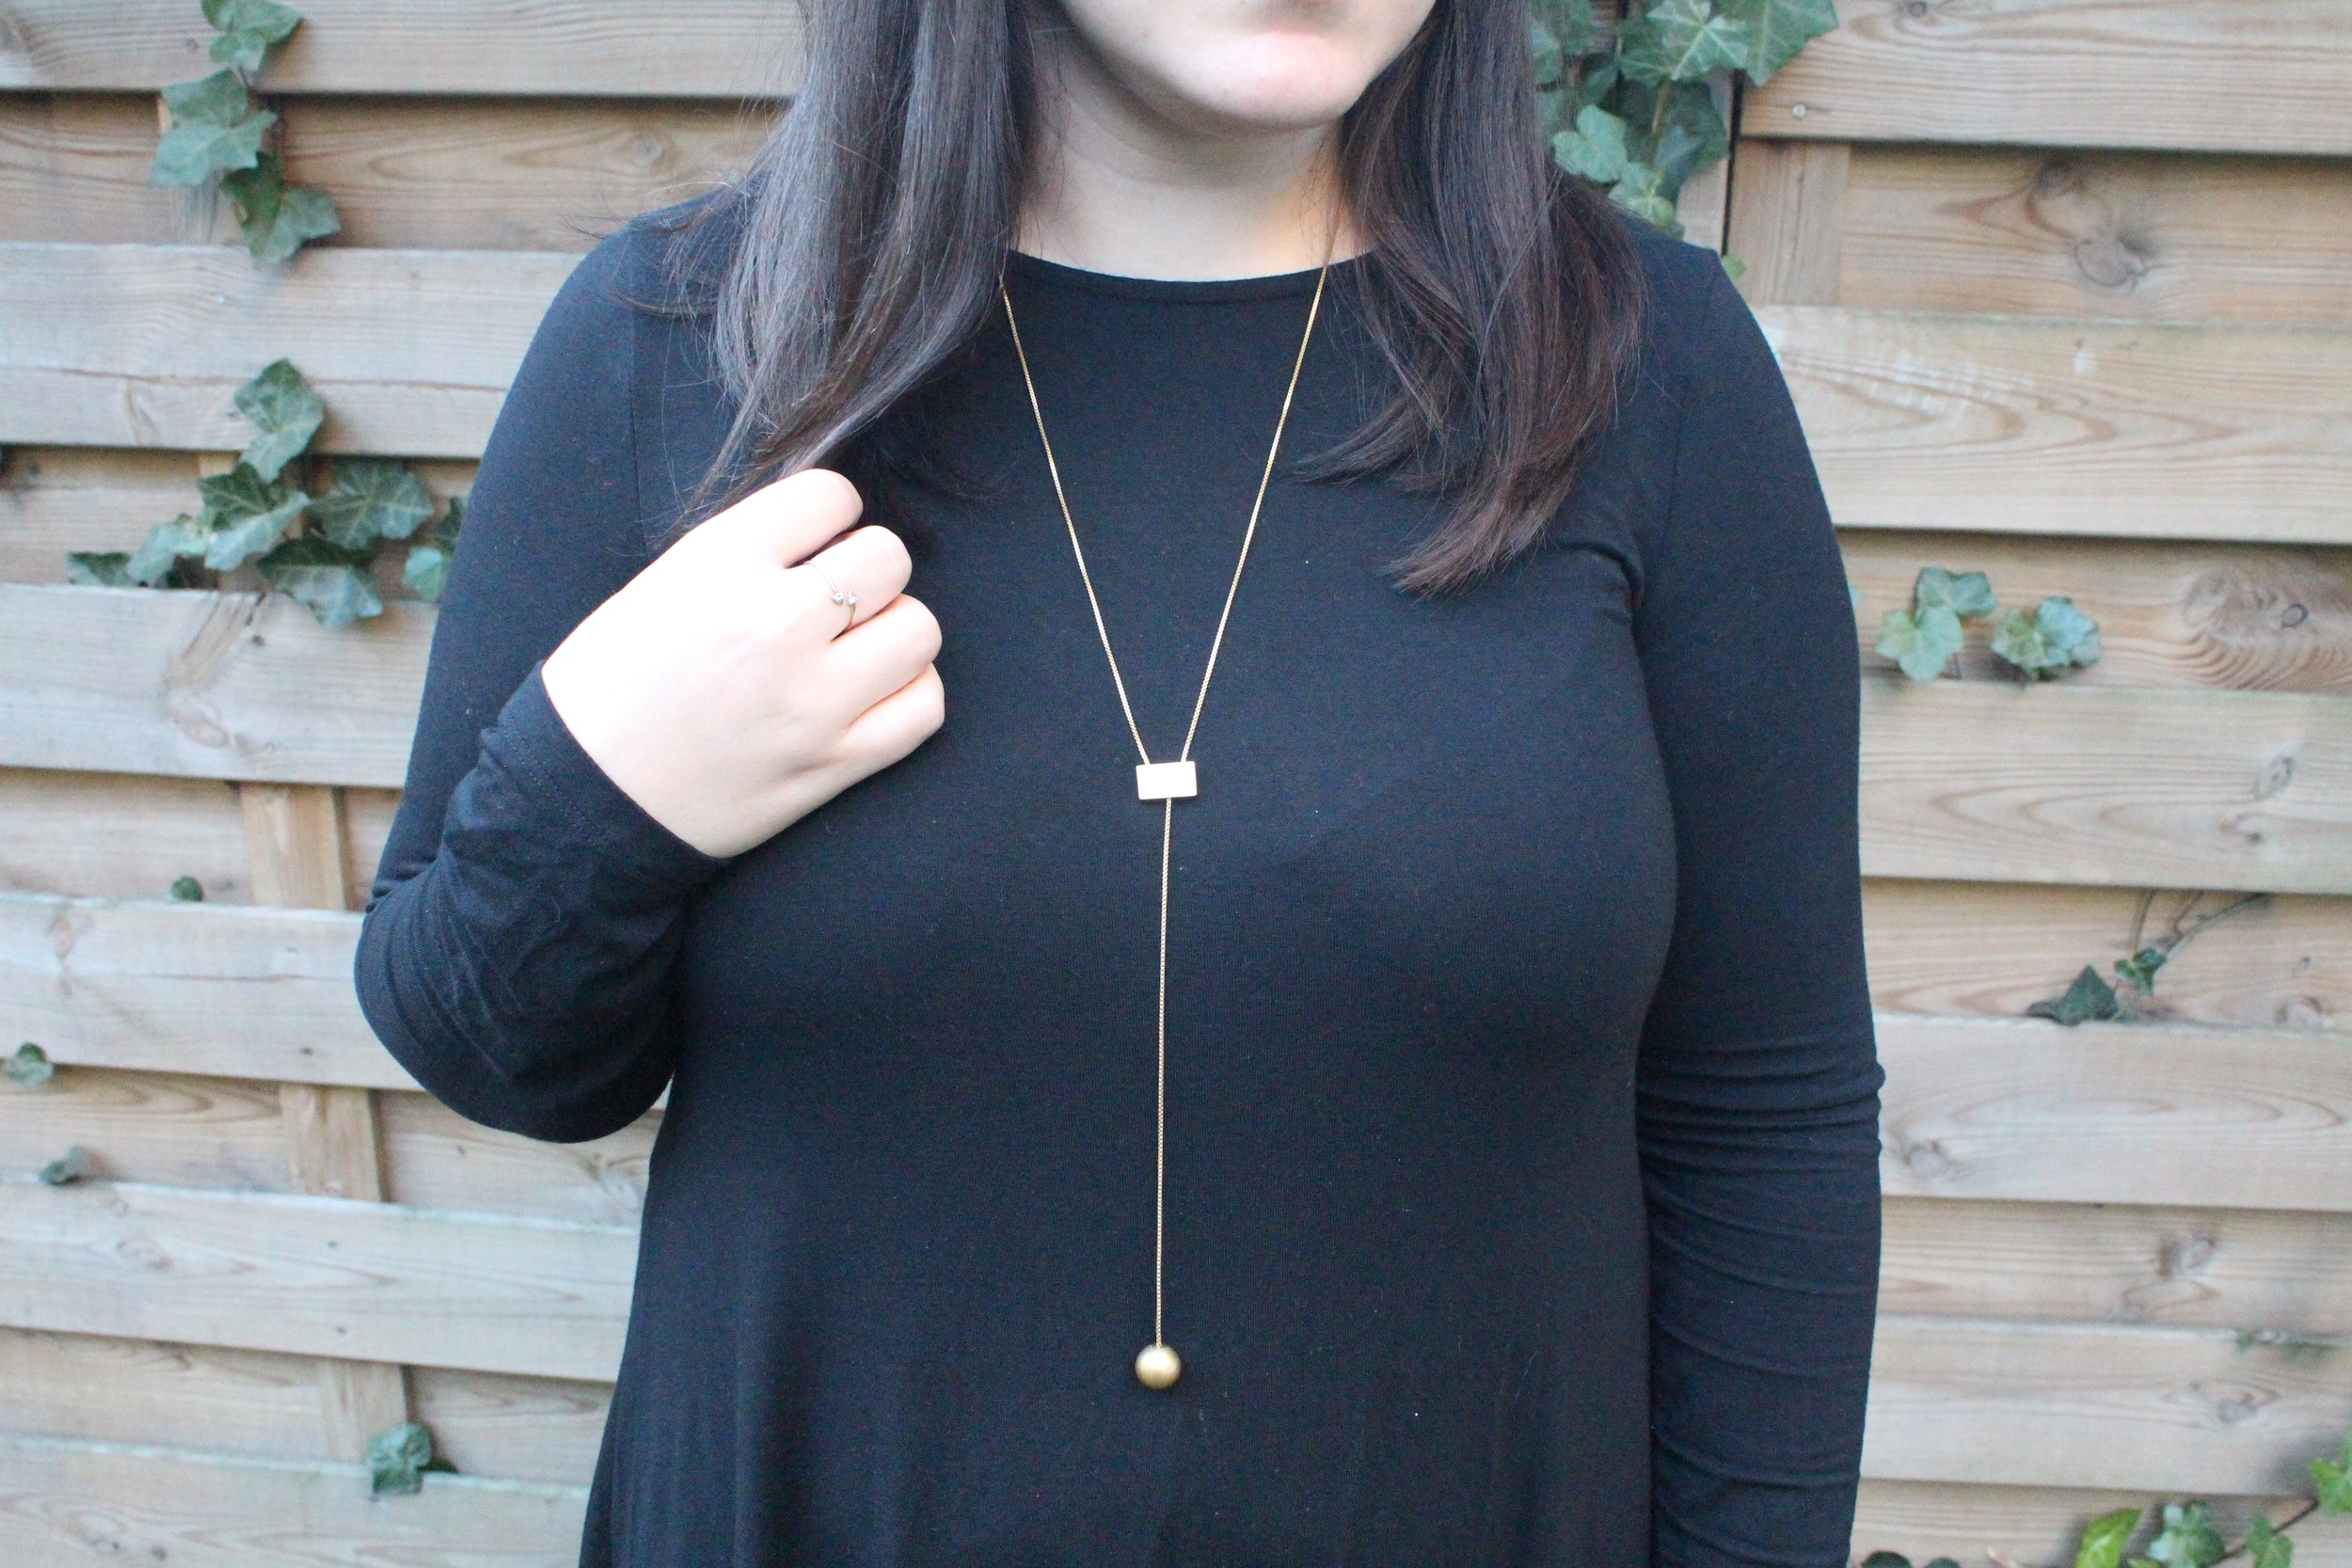 """Madewell """"balldrop necklace"""" - $35.00 (currently sold out 😕)"""